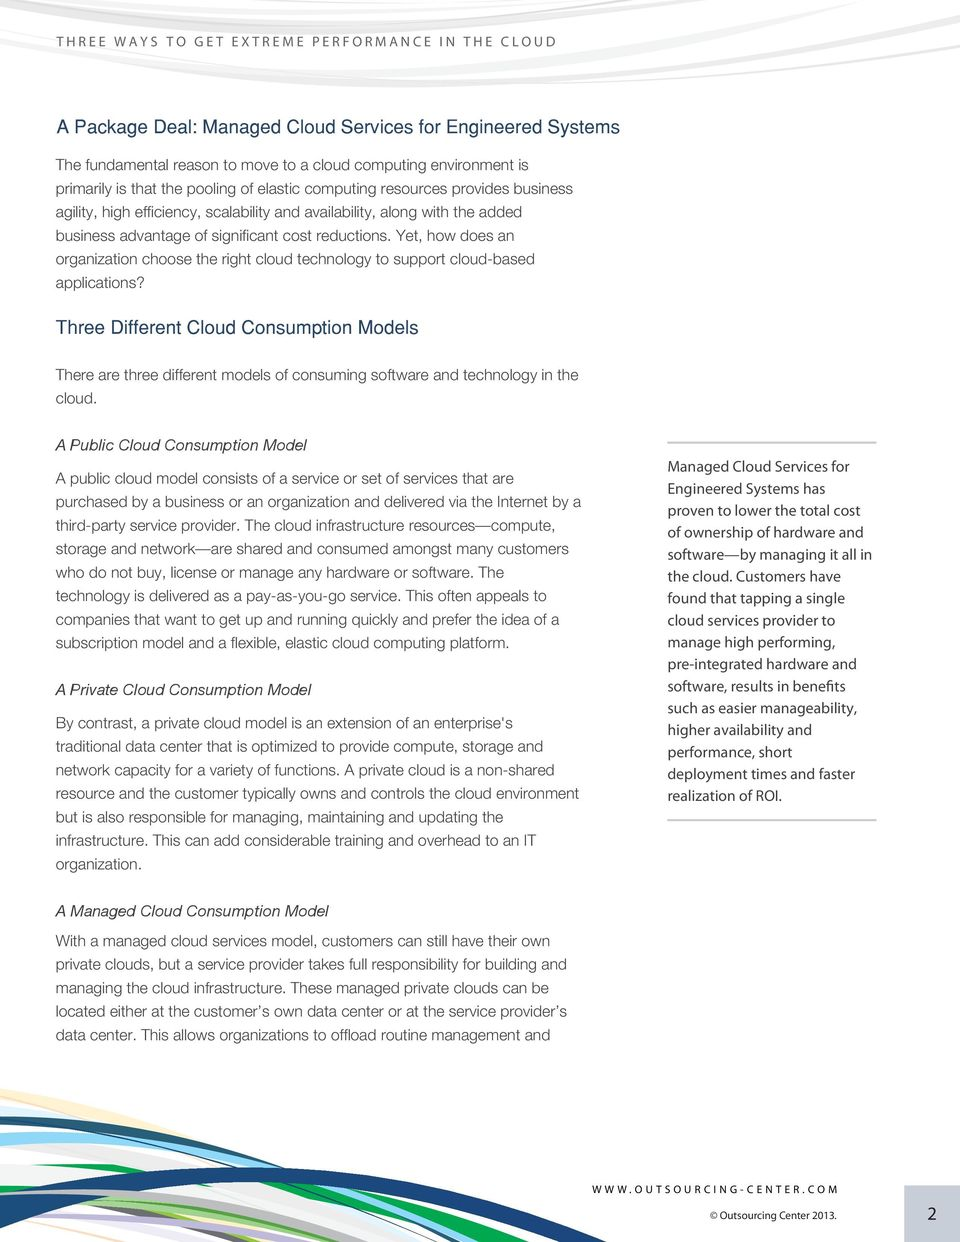 Yet, how does an organization choose the right cloud technology to support cloud-based applications?